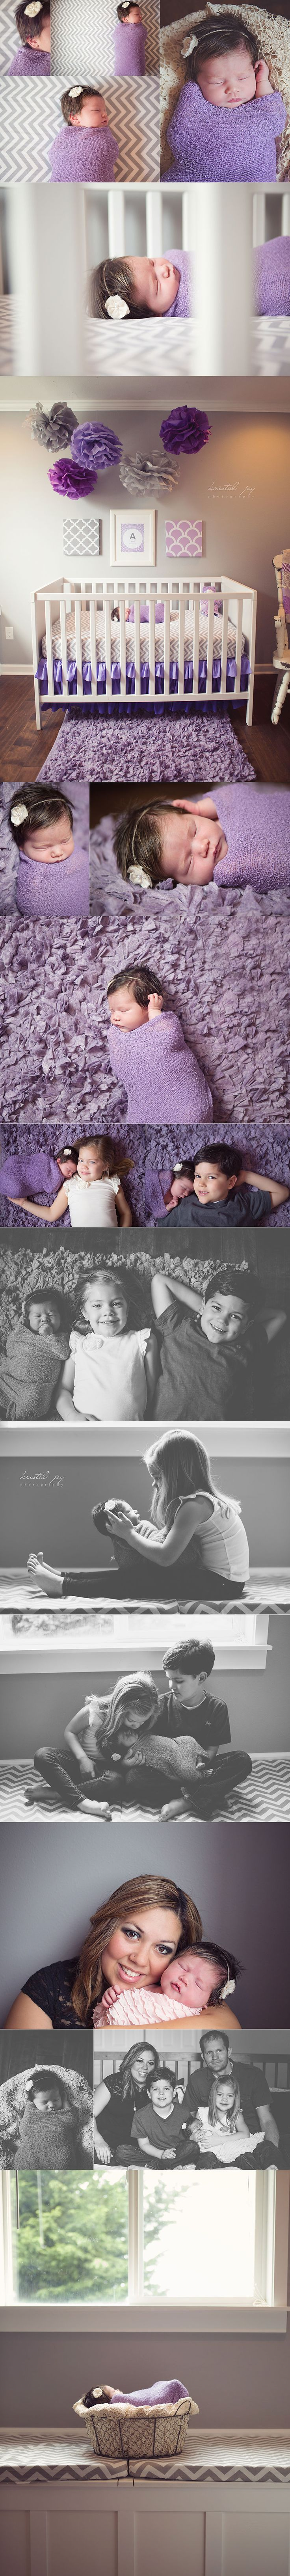 First I noticed the adorable baby in the dreamiest purple and grey nursery ever. Then I thought OMG!! these are some of the cutest new born pics!!  {I love the one of the baby and big sissy holding her}